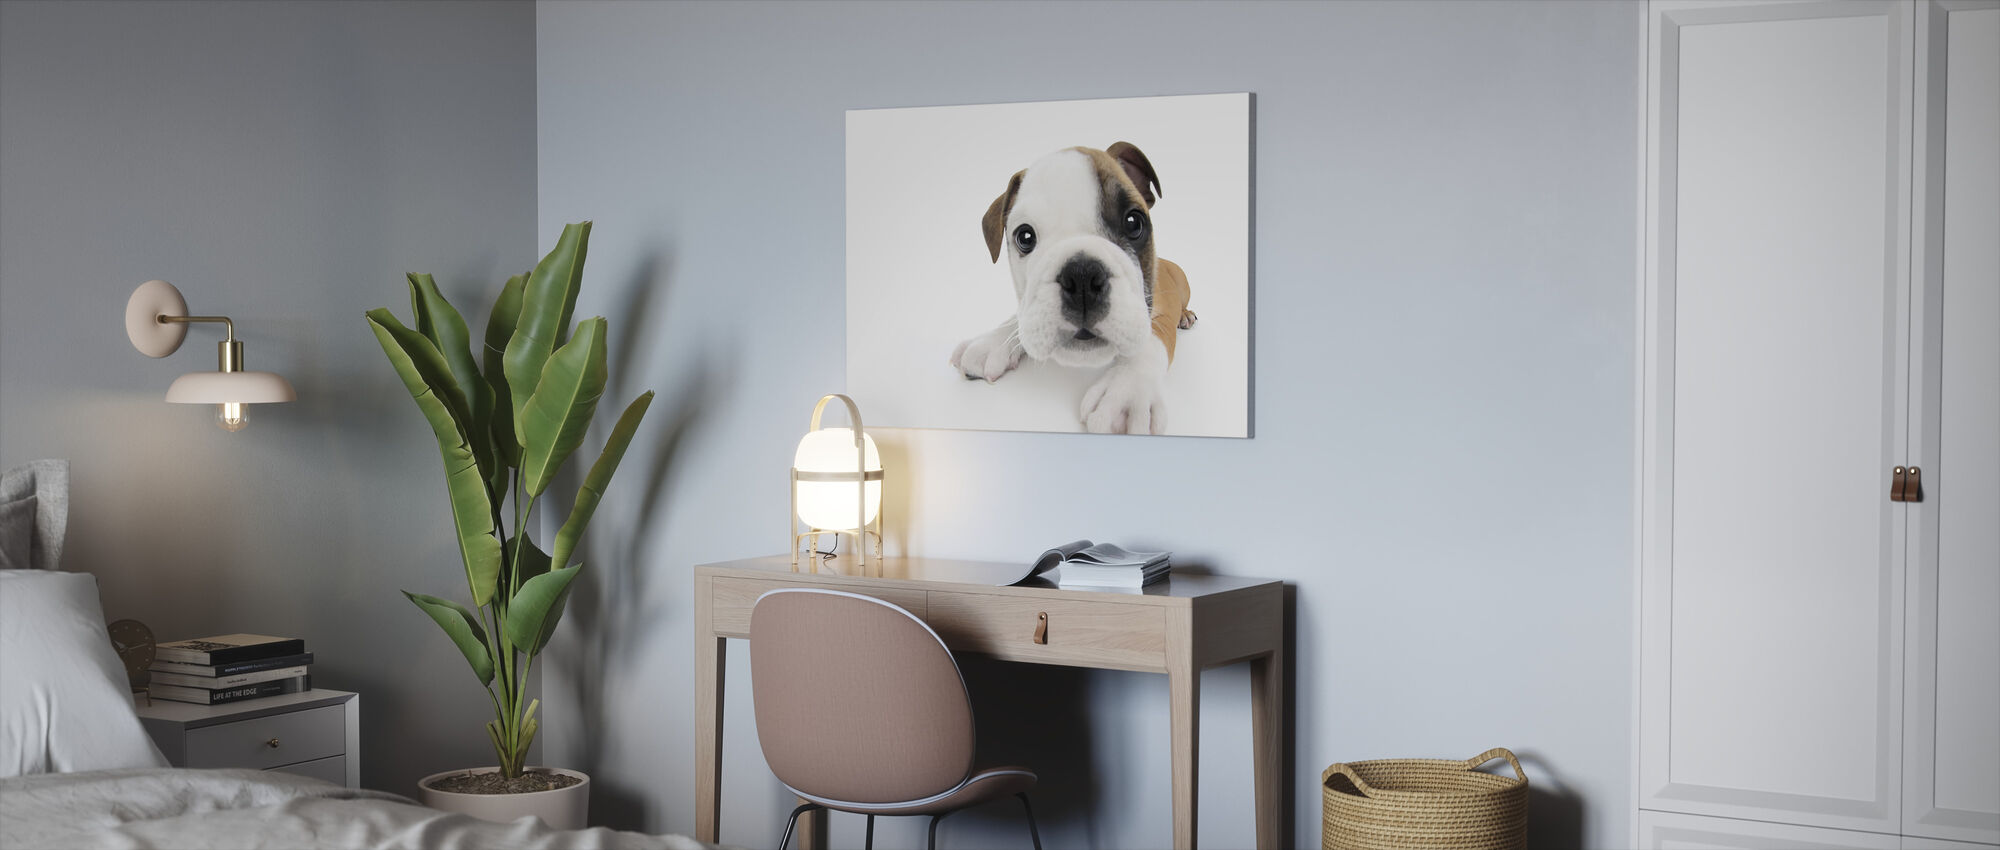 Curious Puppy - Canvas print - Office